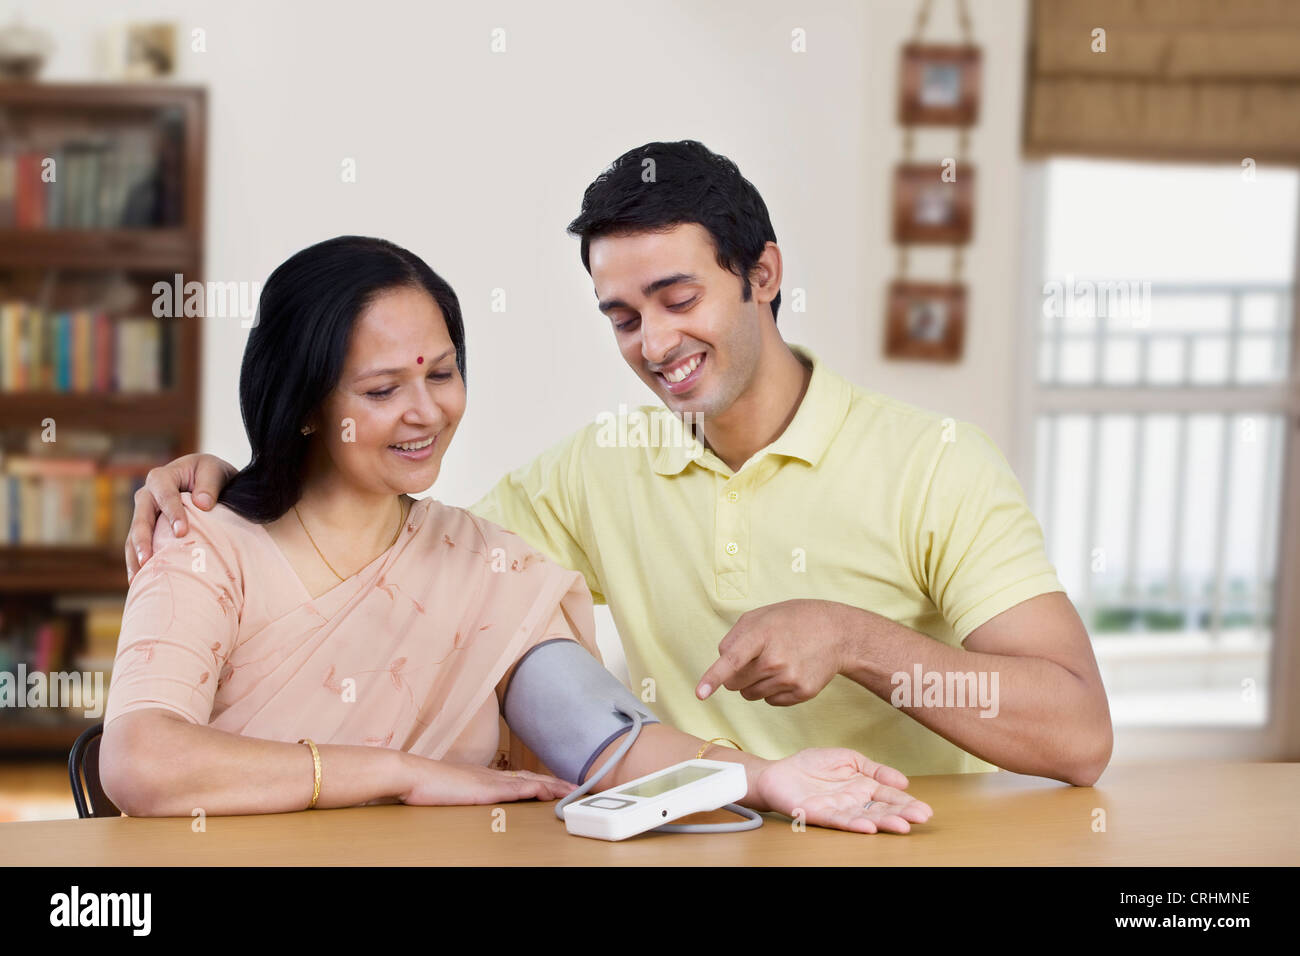 Young man sitting with mother pointing at blood pressure gauge - Stock Image